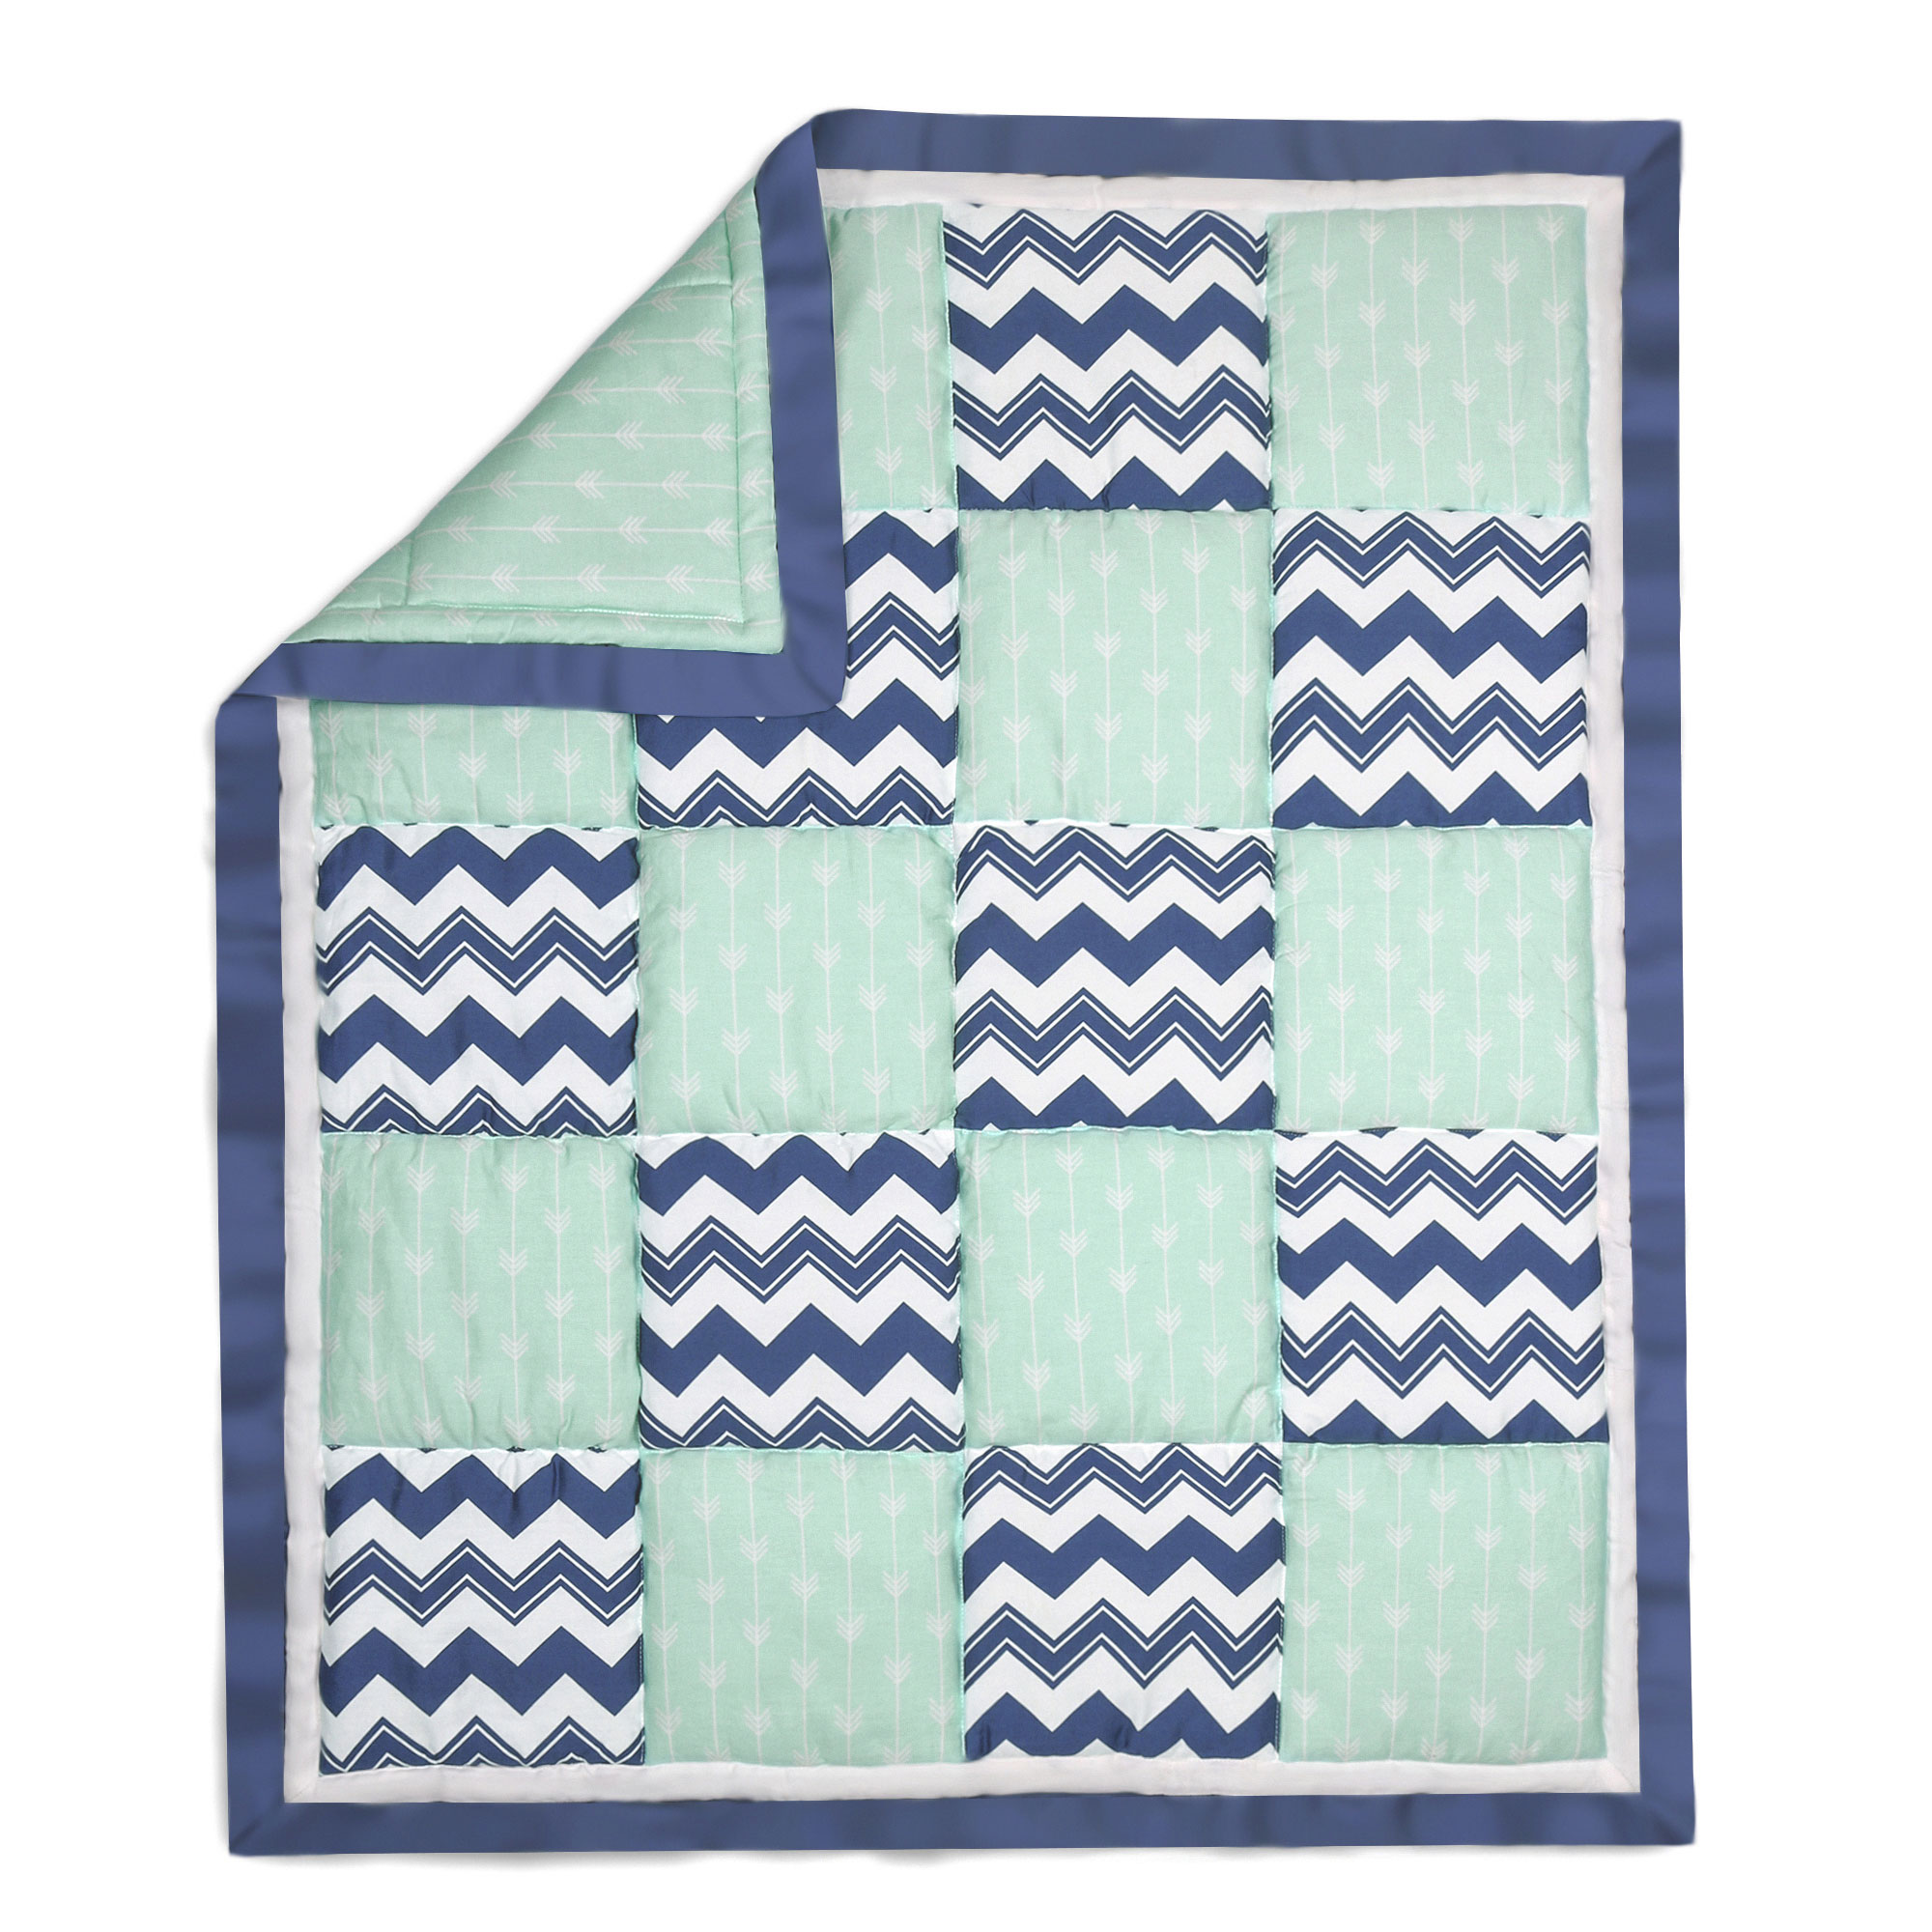 The Peanut Shell Baby Crib Quilt - Navy Blue and Mint Green Zig Zag Patchwork - 100% Cotton Sateen Fabrics, 44 by 37 Inches